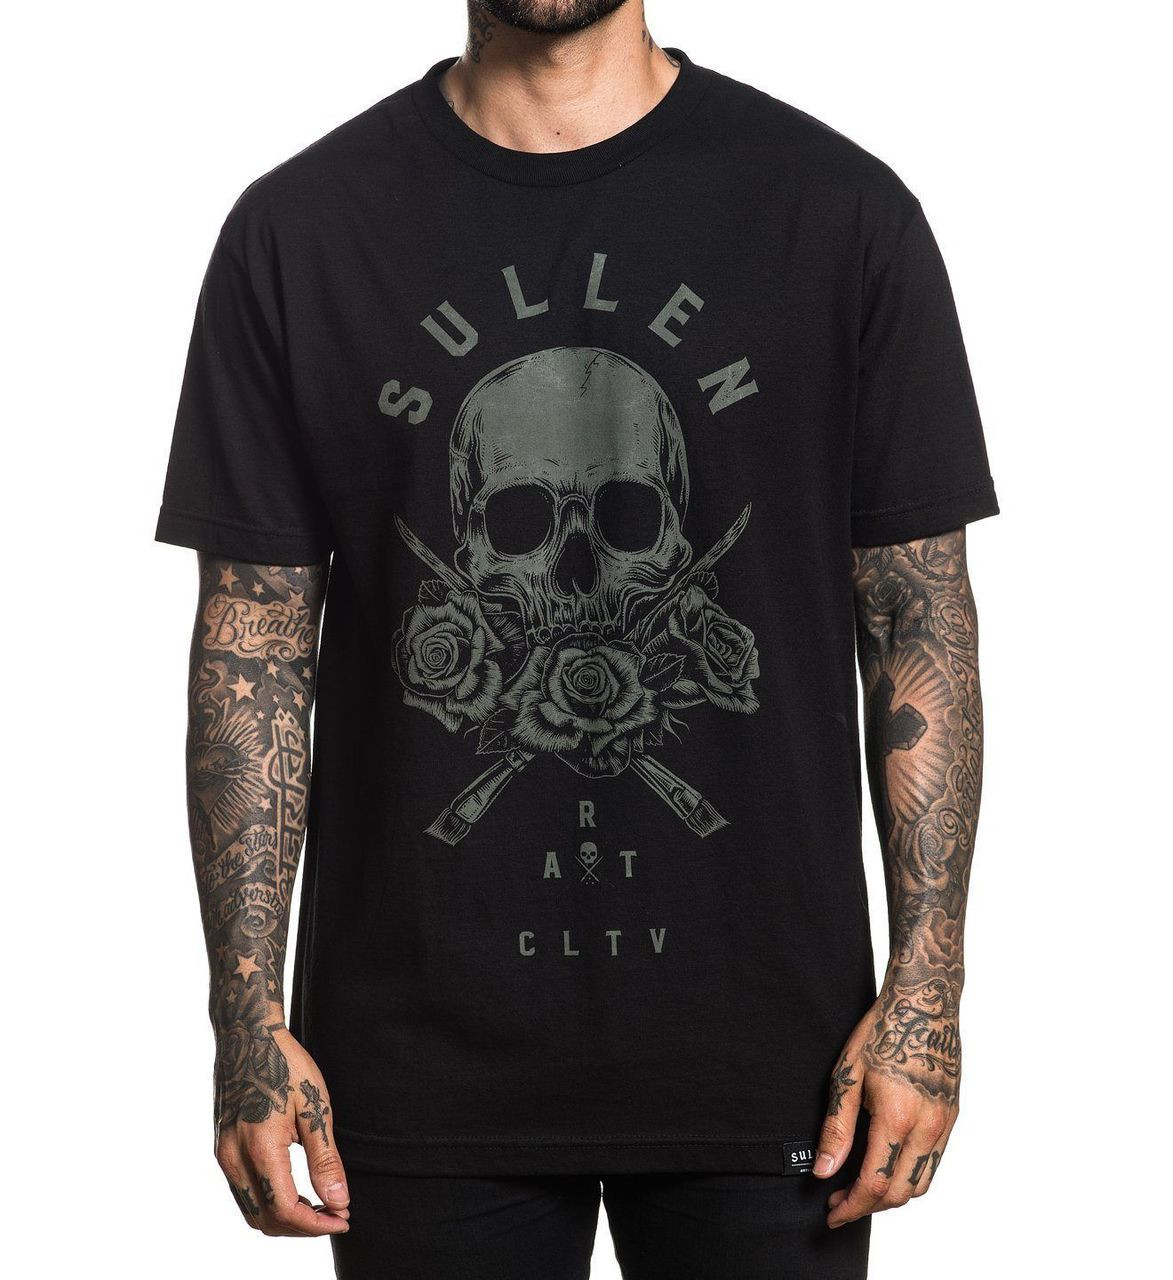 Sullen Art Collective Clothing 3 Roses Skull Urban Ink Tattooed T ...